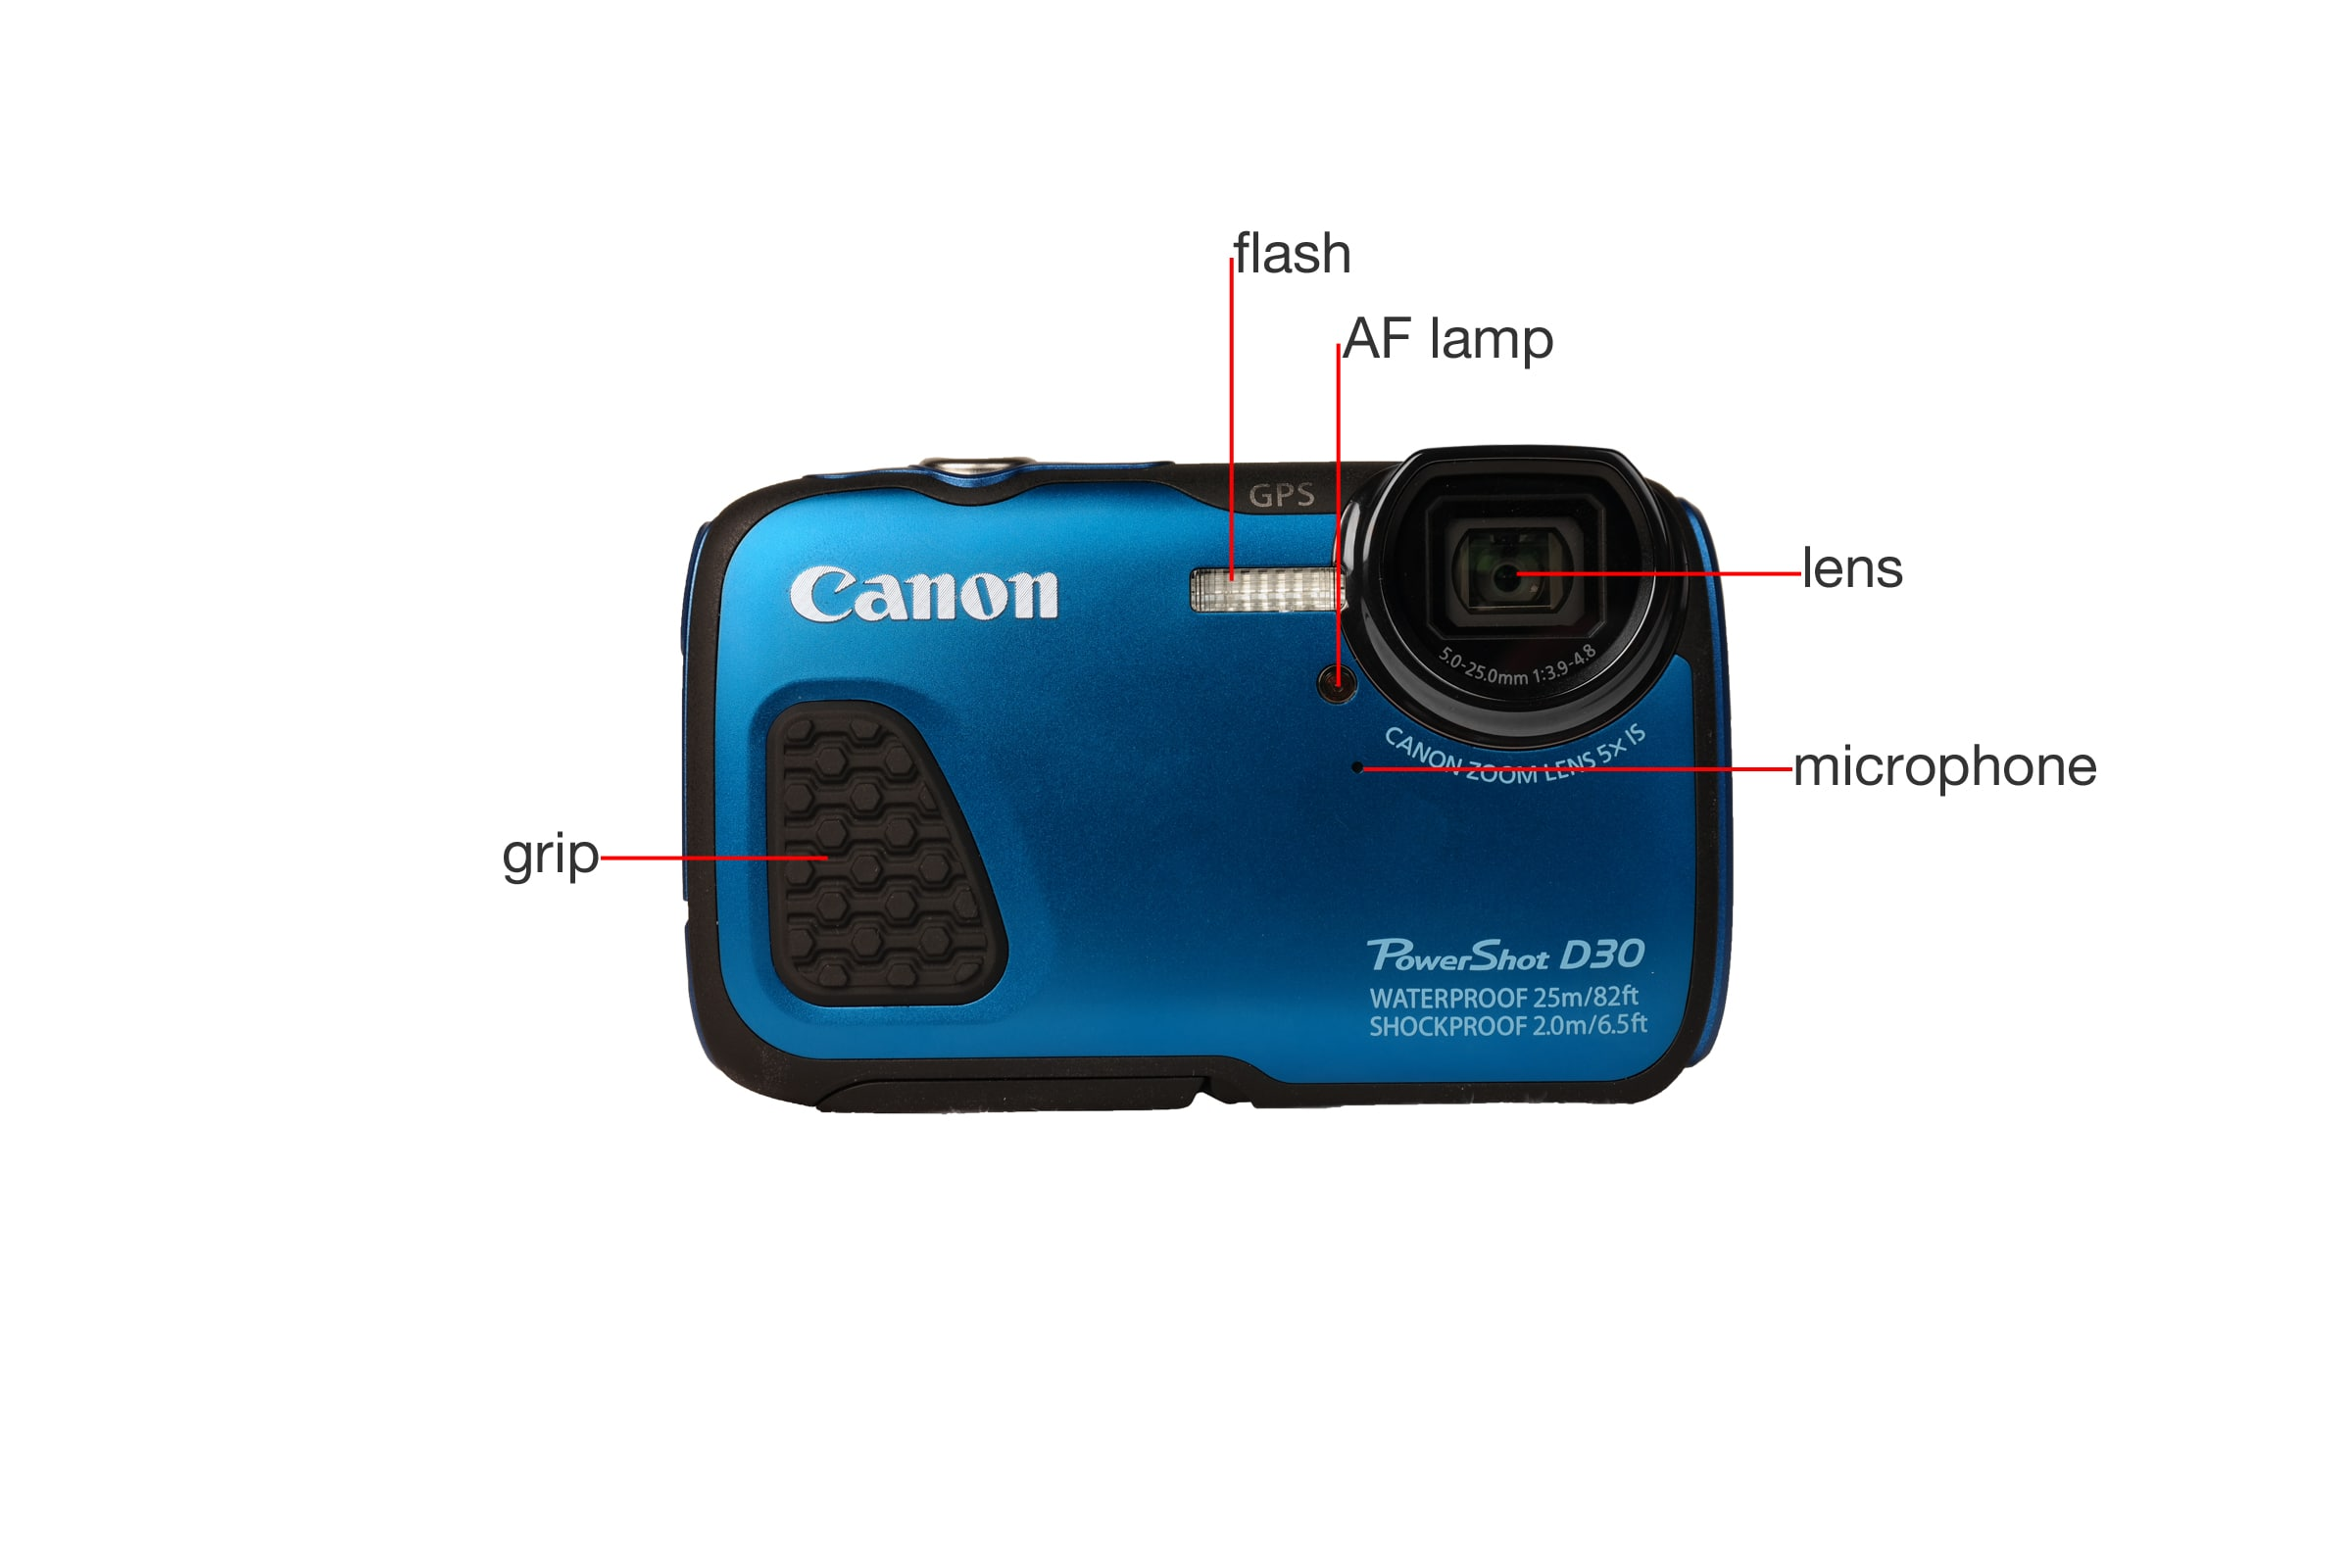 A closer look at the Canon PowerShot D30.